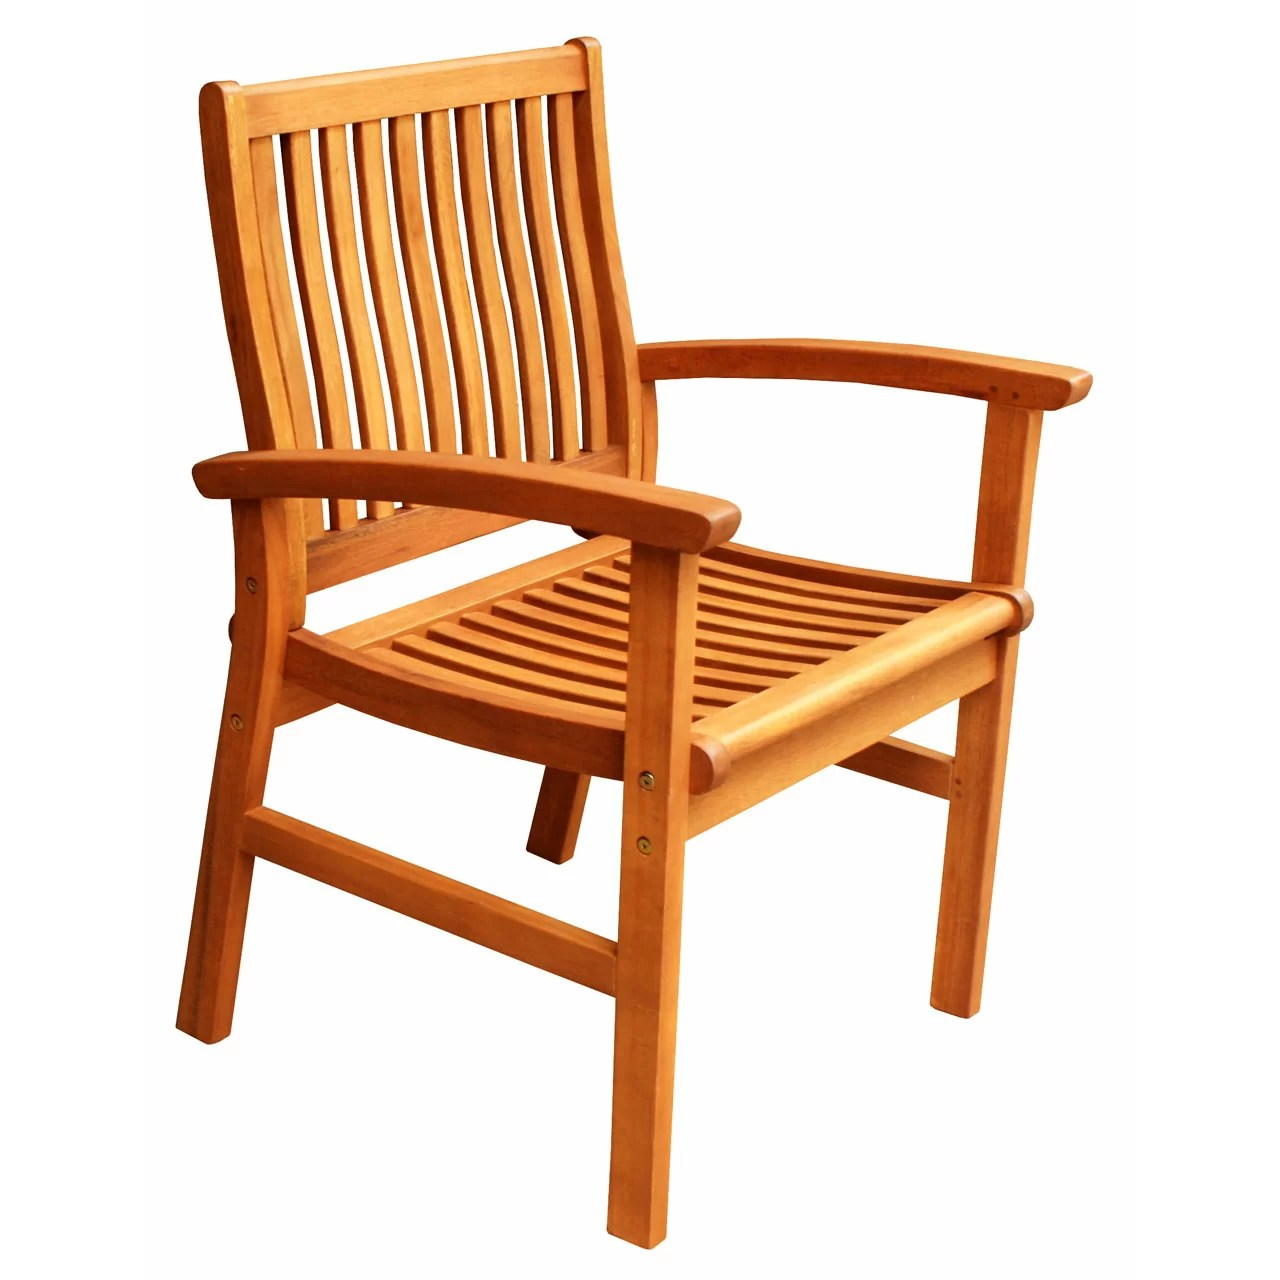 Hawaiian Chair Alkbrands Luunguyen Hawaii Patio Arm Chair And Reviews Wayfair